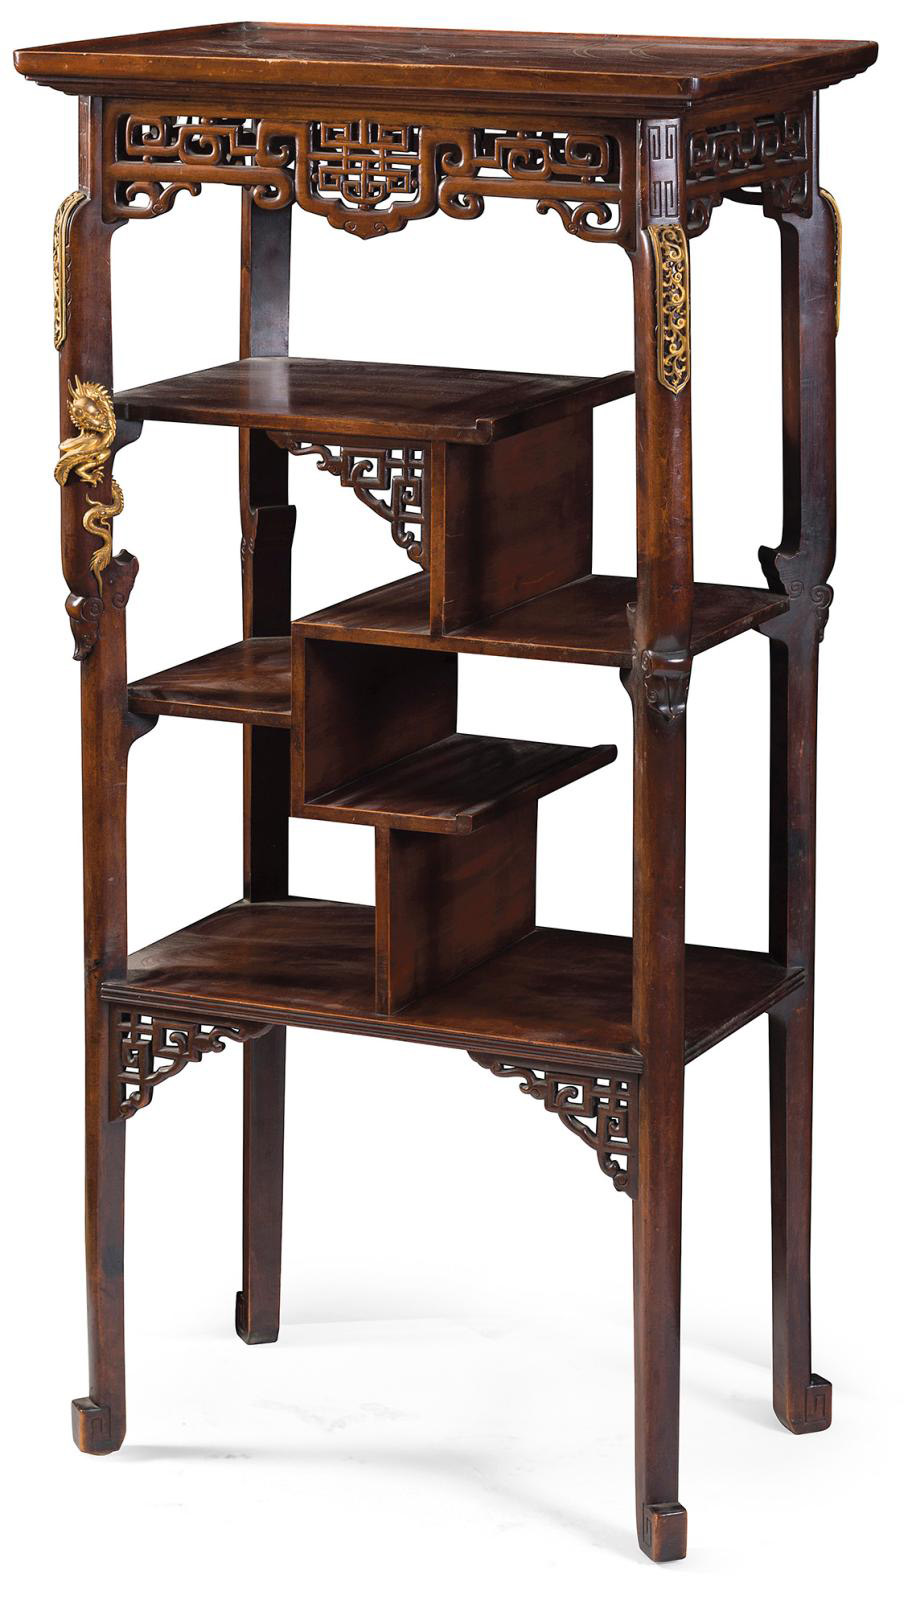 Carved, molded, patinated, openwork high stand in wood, with stylized plant and foliage decoration, console base joined together with unst